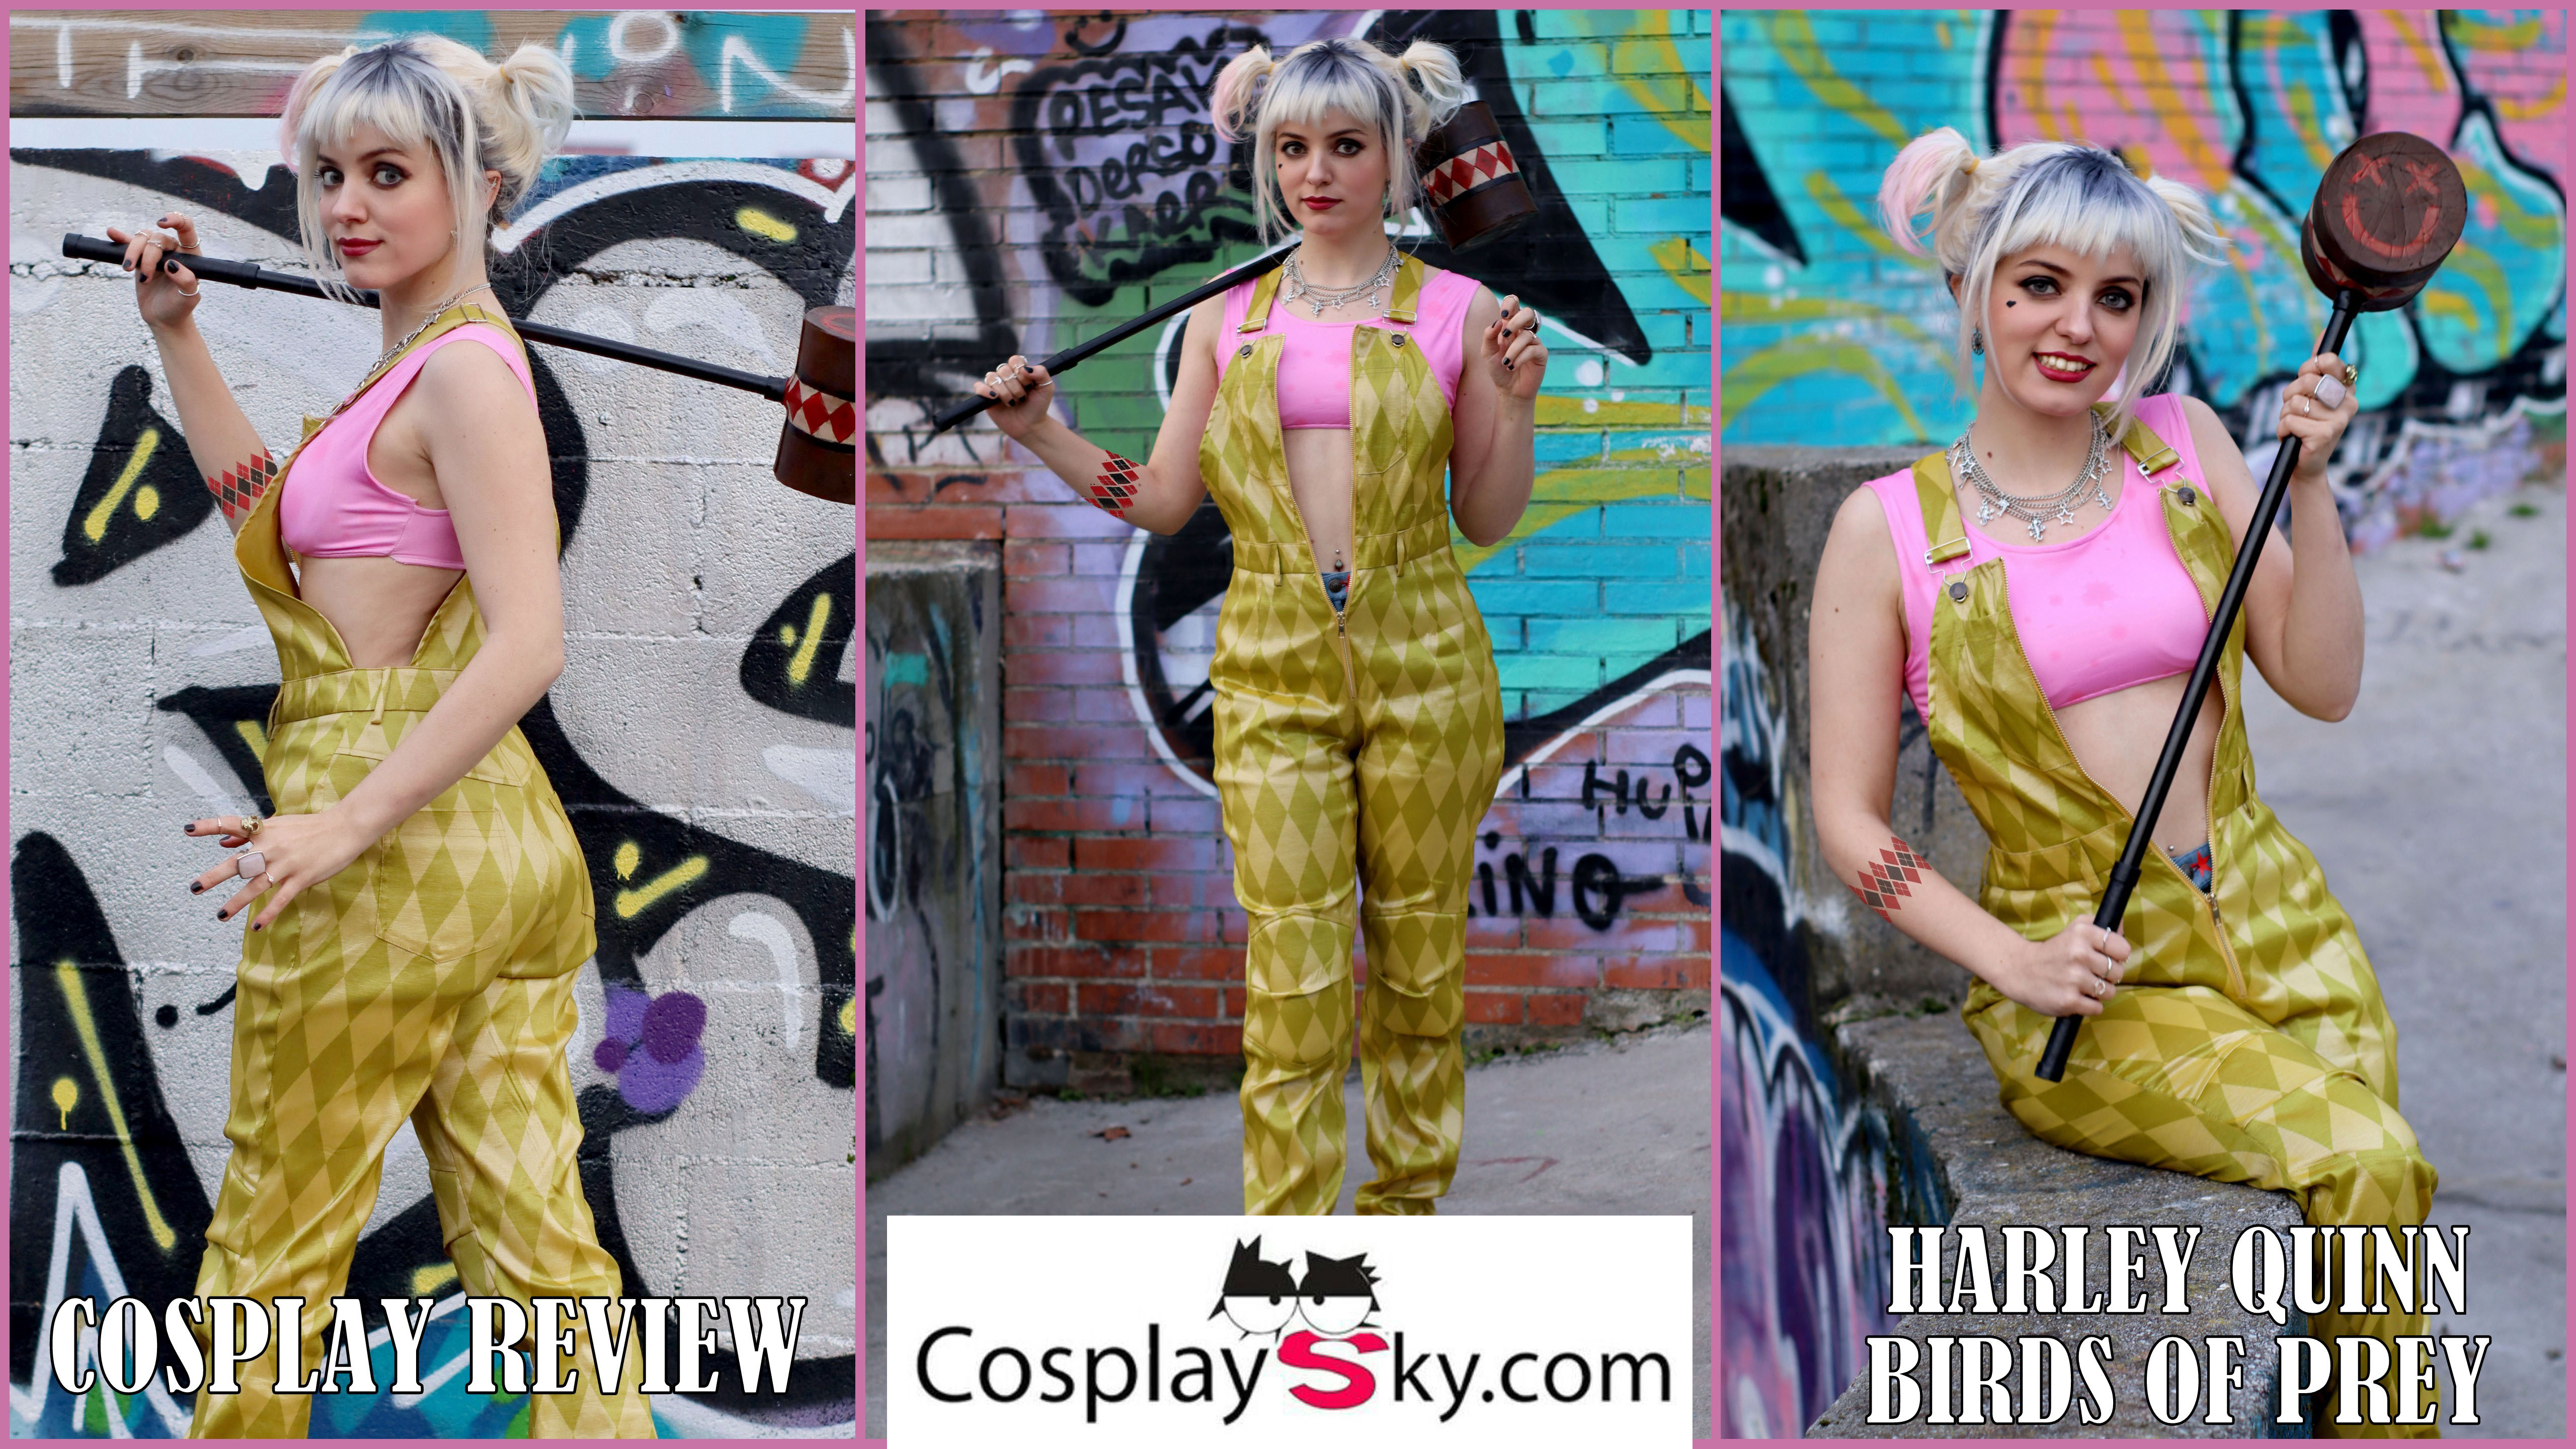 Cosplay Review: Harley Quinn (Birds of Prey) from Cosplay Sky